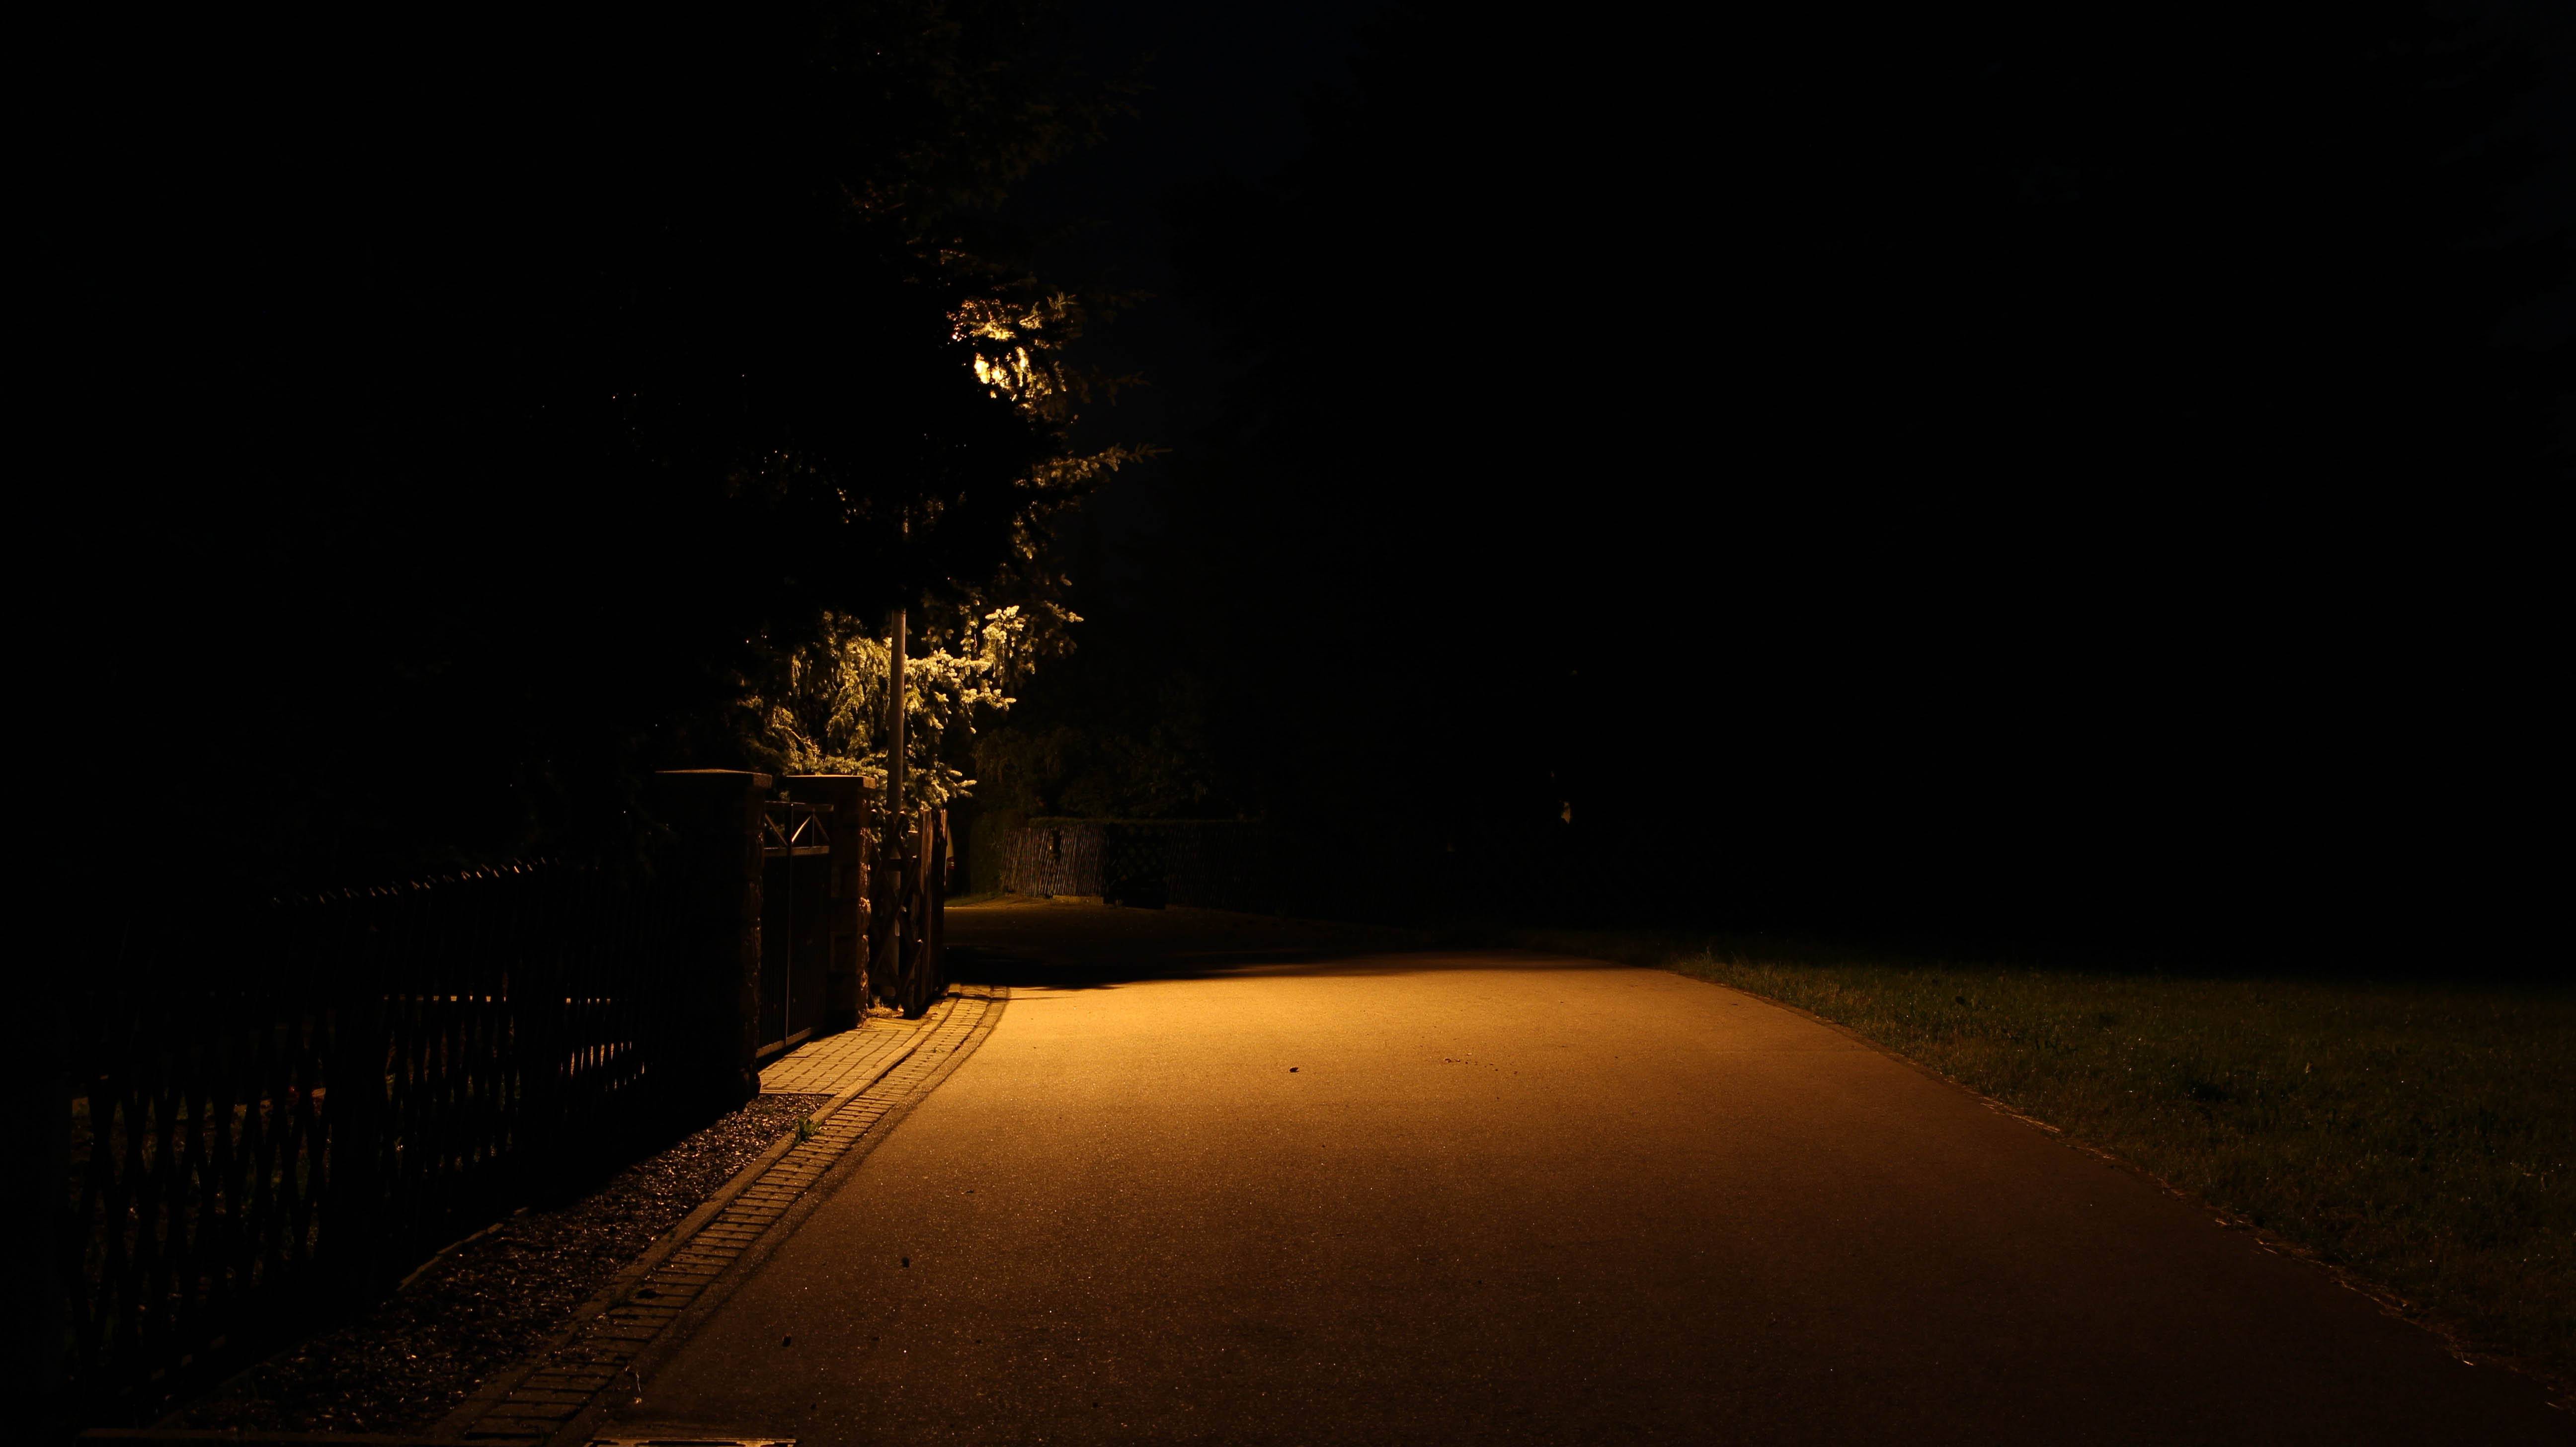 Lonely street at night photo